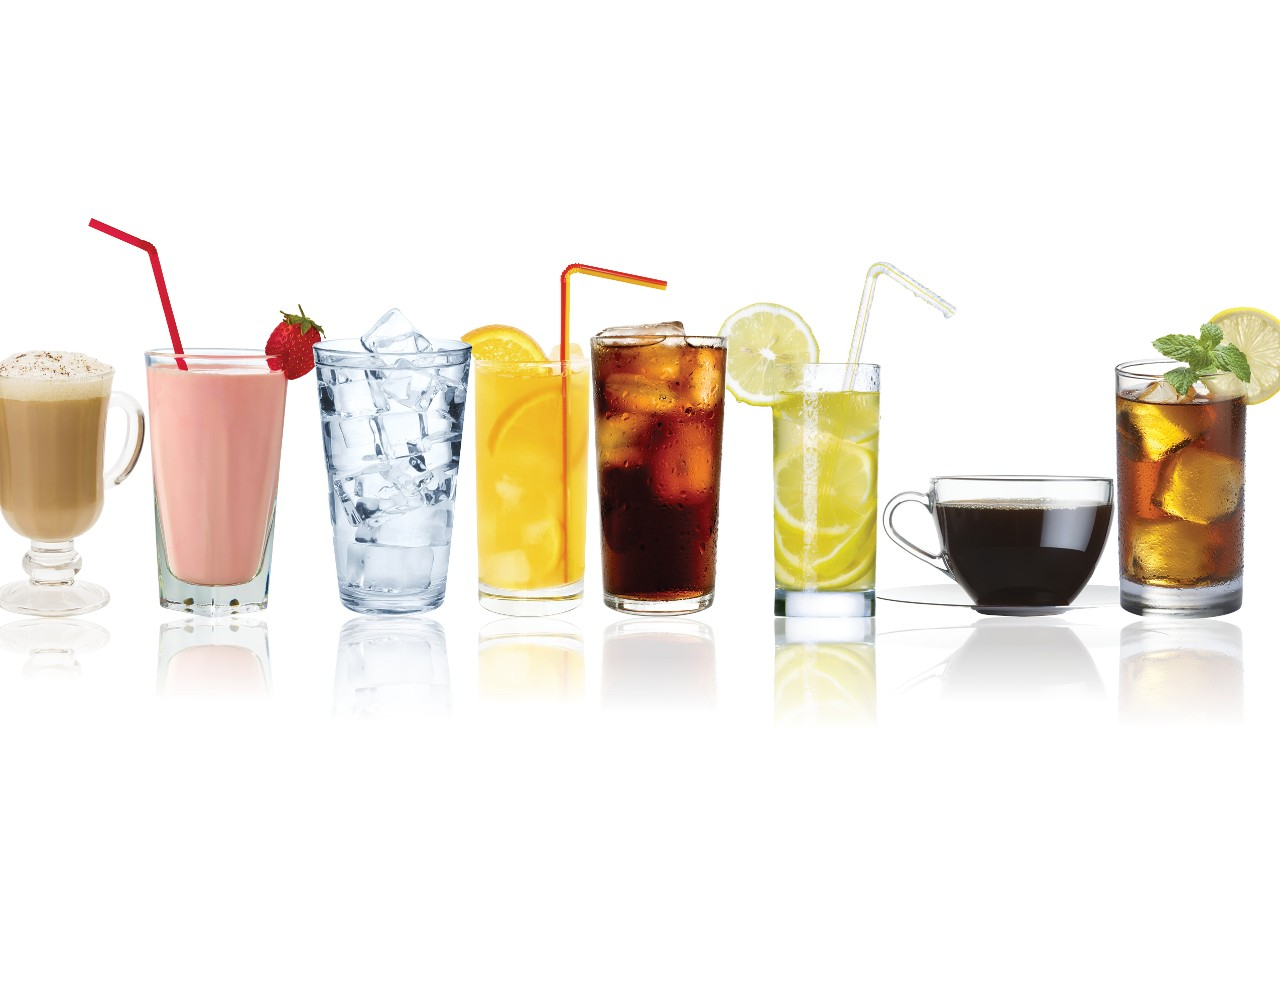 food-service-image-various-beverages-with-white-background-banner-horizontal-2550x1966-image-file